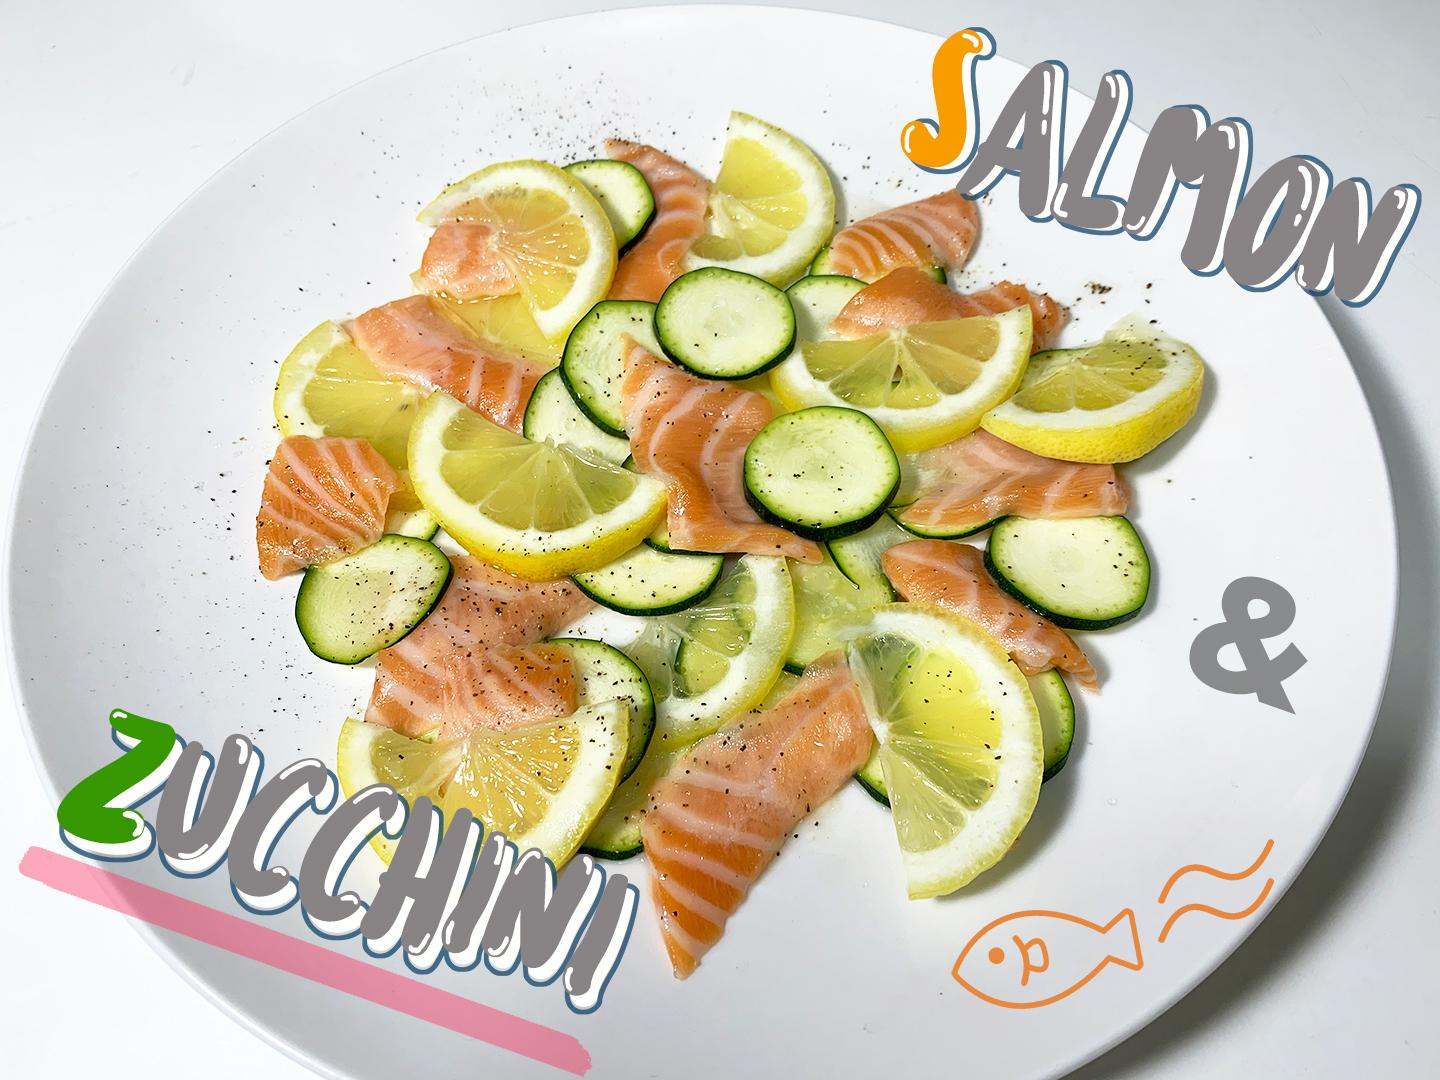 2: Refreshing carpaccio image of fresh and young zucchini and salmon